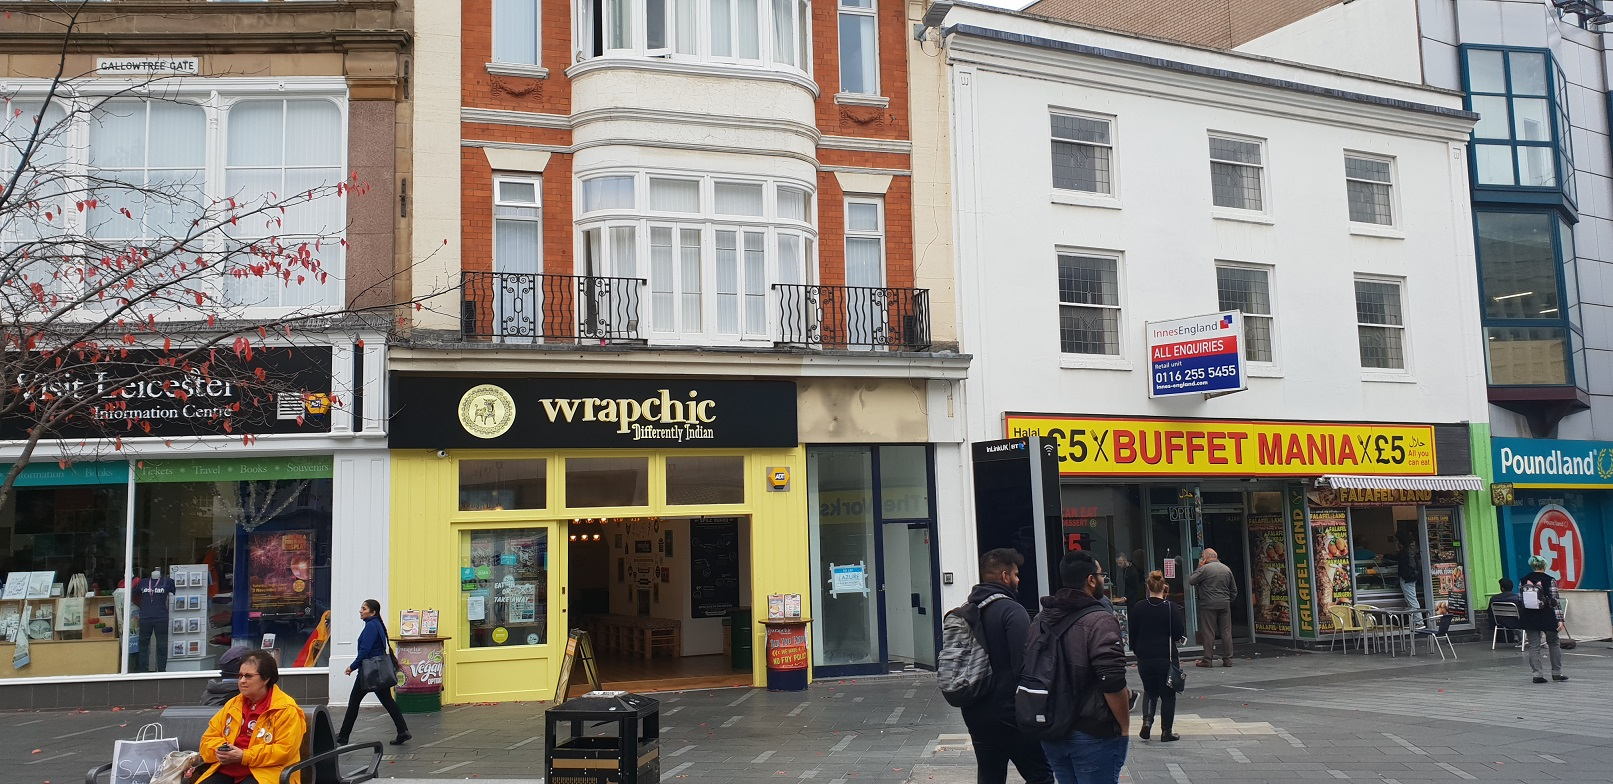 0 bed Shop for rent in Leicester. From Azure Property Consultants